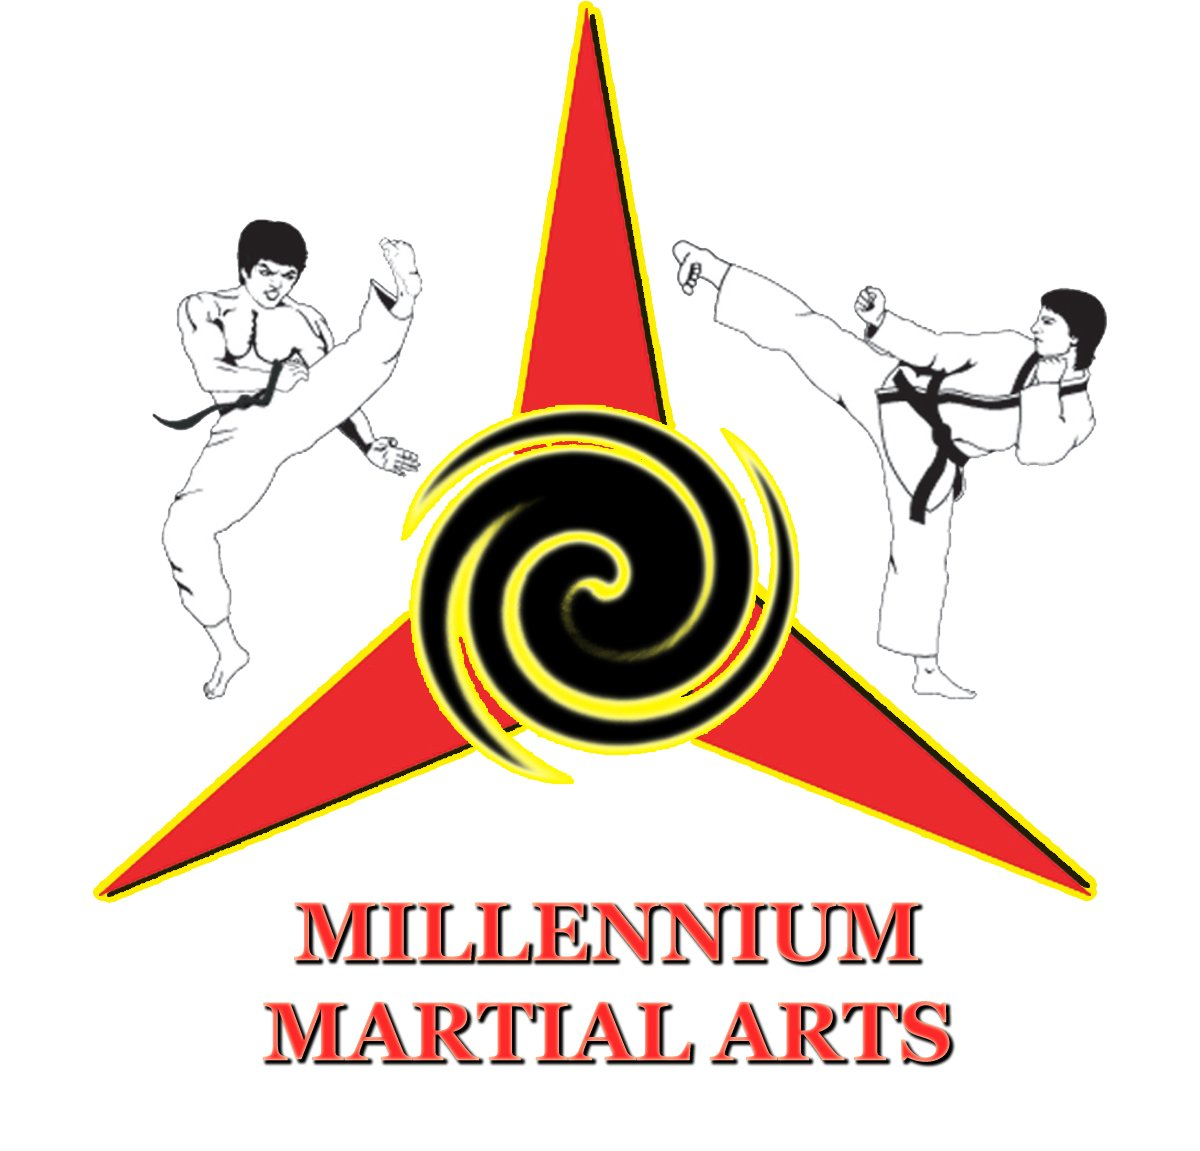 Millennium Martial Arts School Aikido, Jujitsu in Vaughan